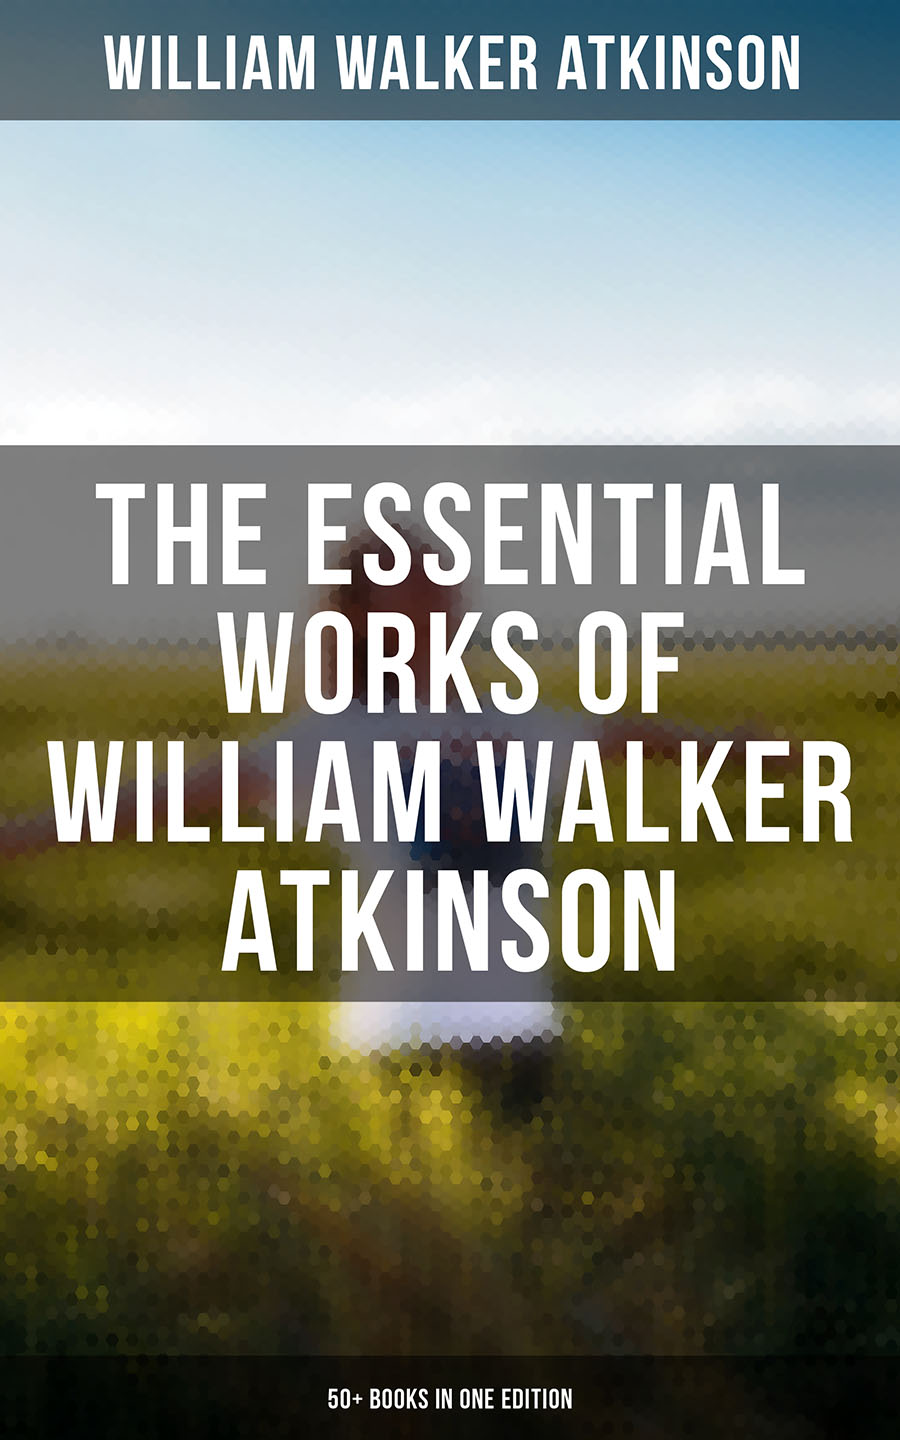 William Walker Atkinson WILLIAM WALKER ATKINSON: 50+ Books in One Edition (The Power of Concentration, Thought-Force in Business and Everyday Life, The Secret of Success, Mind Power, Raja Yoga, Self-Healing…) atkinson william walker a series of lessons in gnani yoga the yoga of wisdom